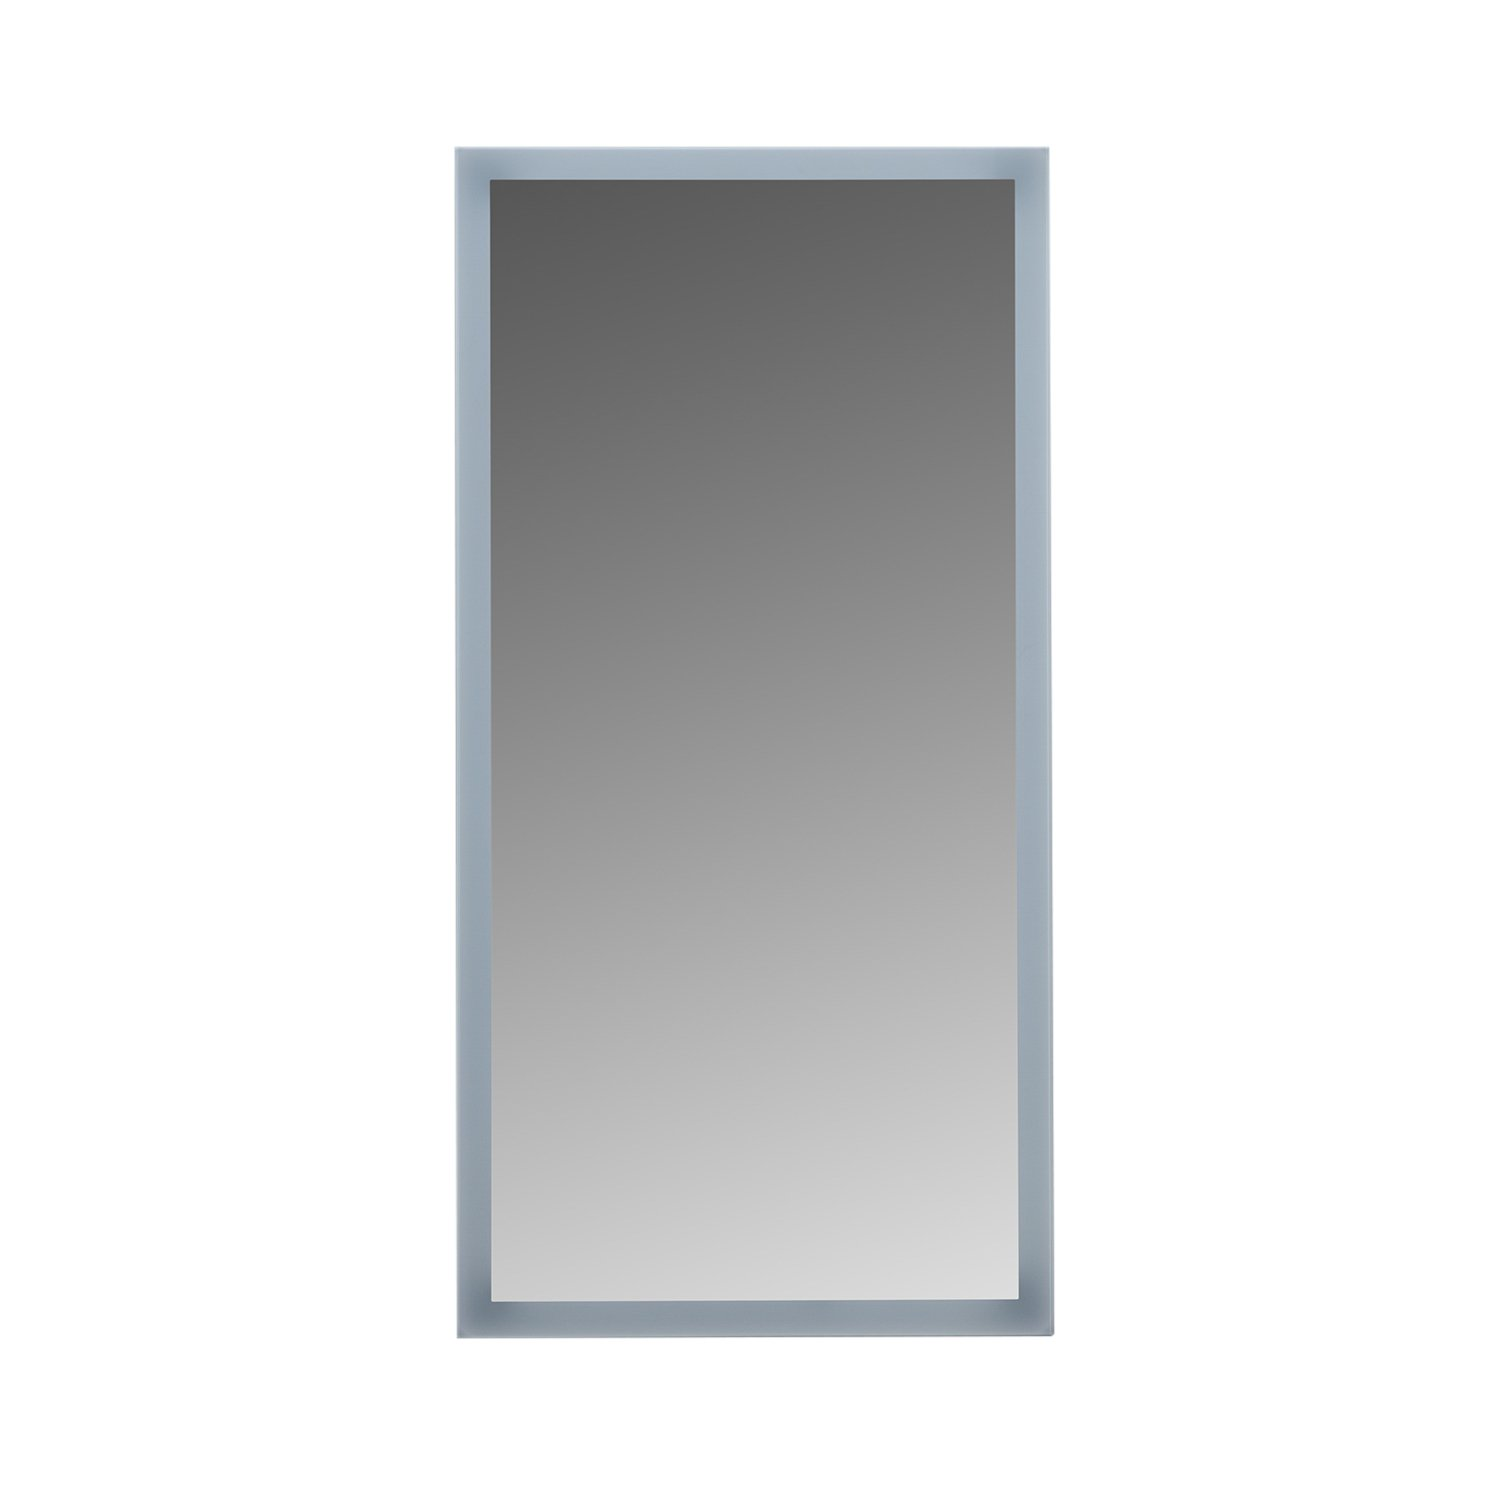 MAYKKE Isabella 20'' W x 40'' H LED Mirror, Wall Mounted Lighted Bathroom Vanity Mirror, Frameless Mirror, Horizontal or Vertical Mirror with LED Lighting Border UL Certified, LMA1002001